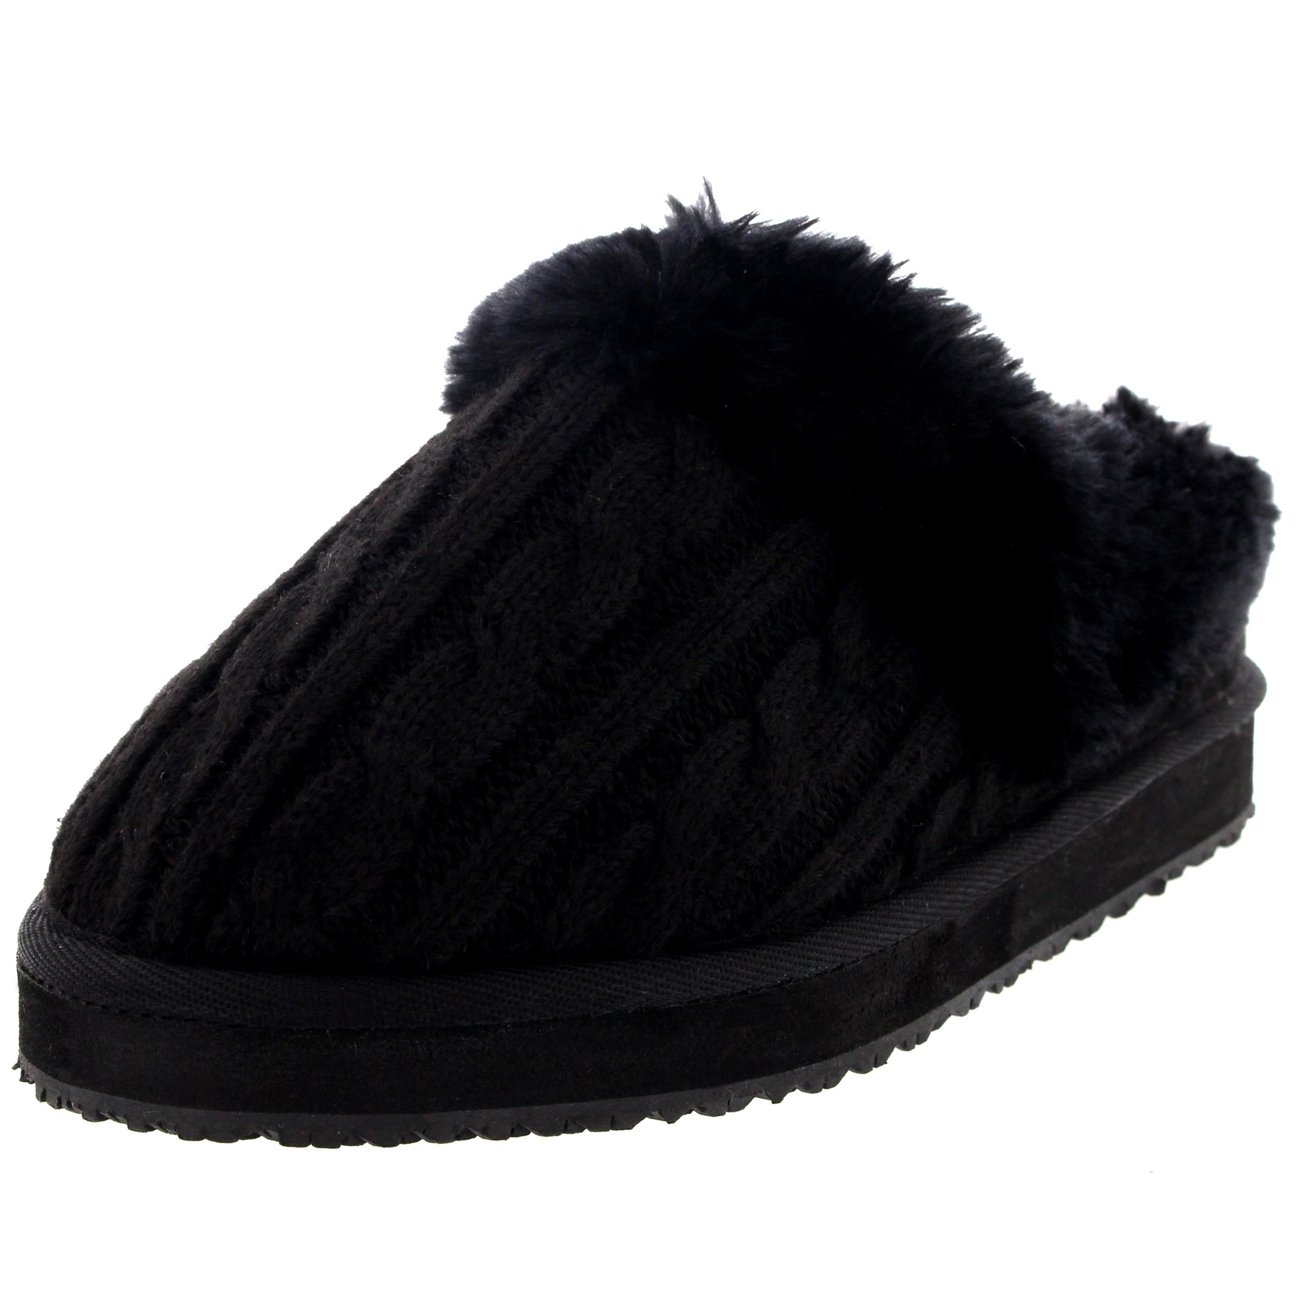 Womens Knitted Cardy Classic Warm Slip On Winter House Slippers - 8 - BLK39 YC0188